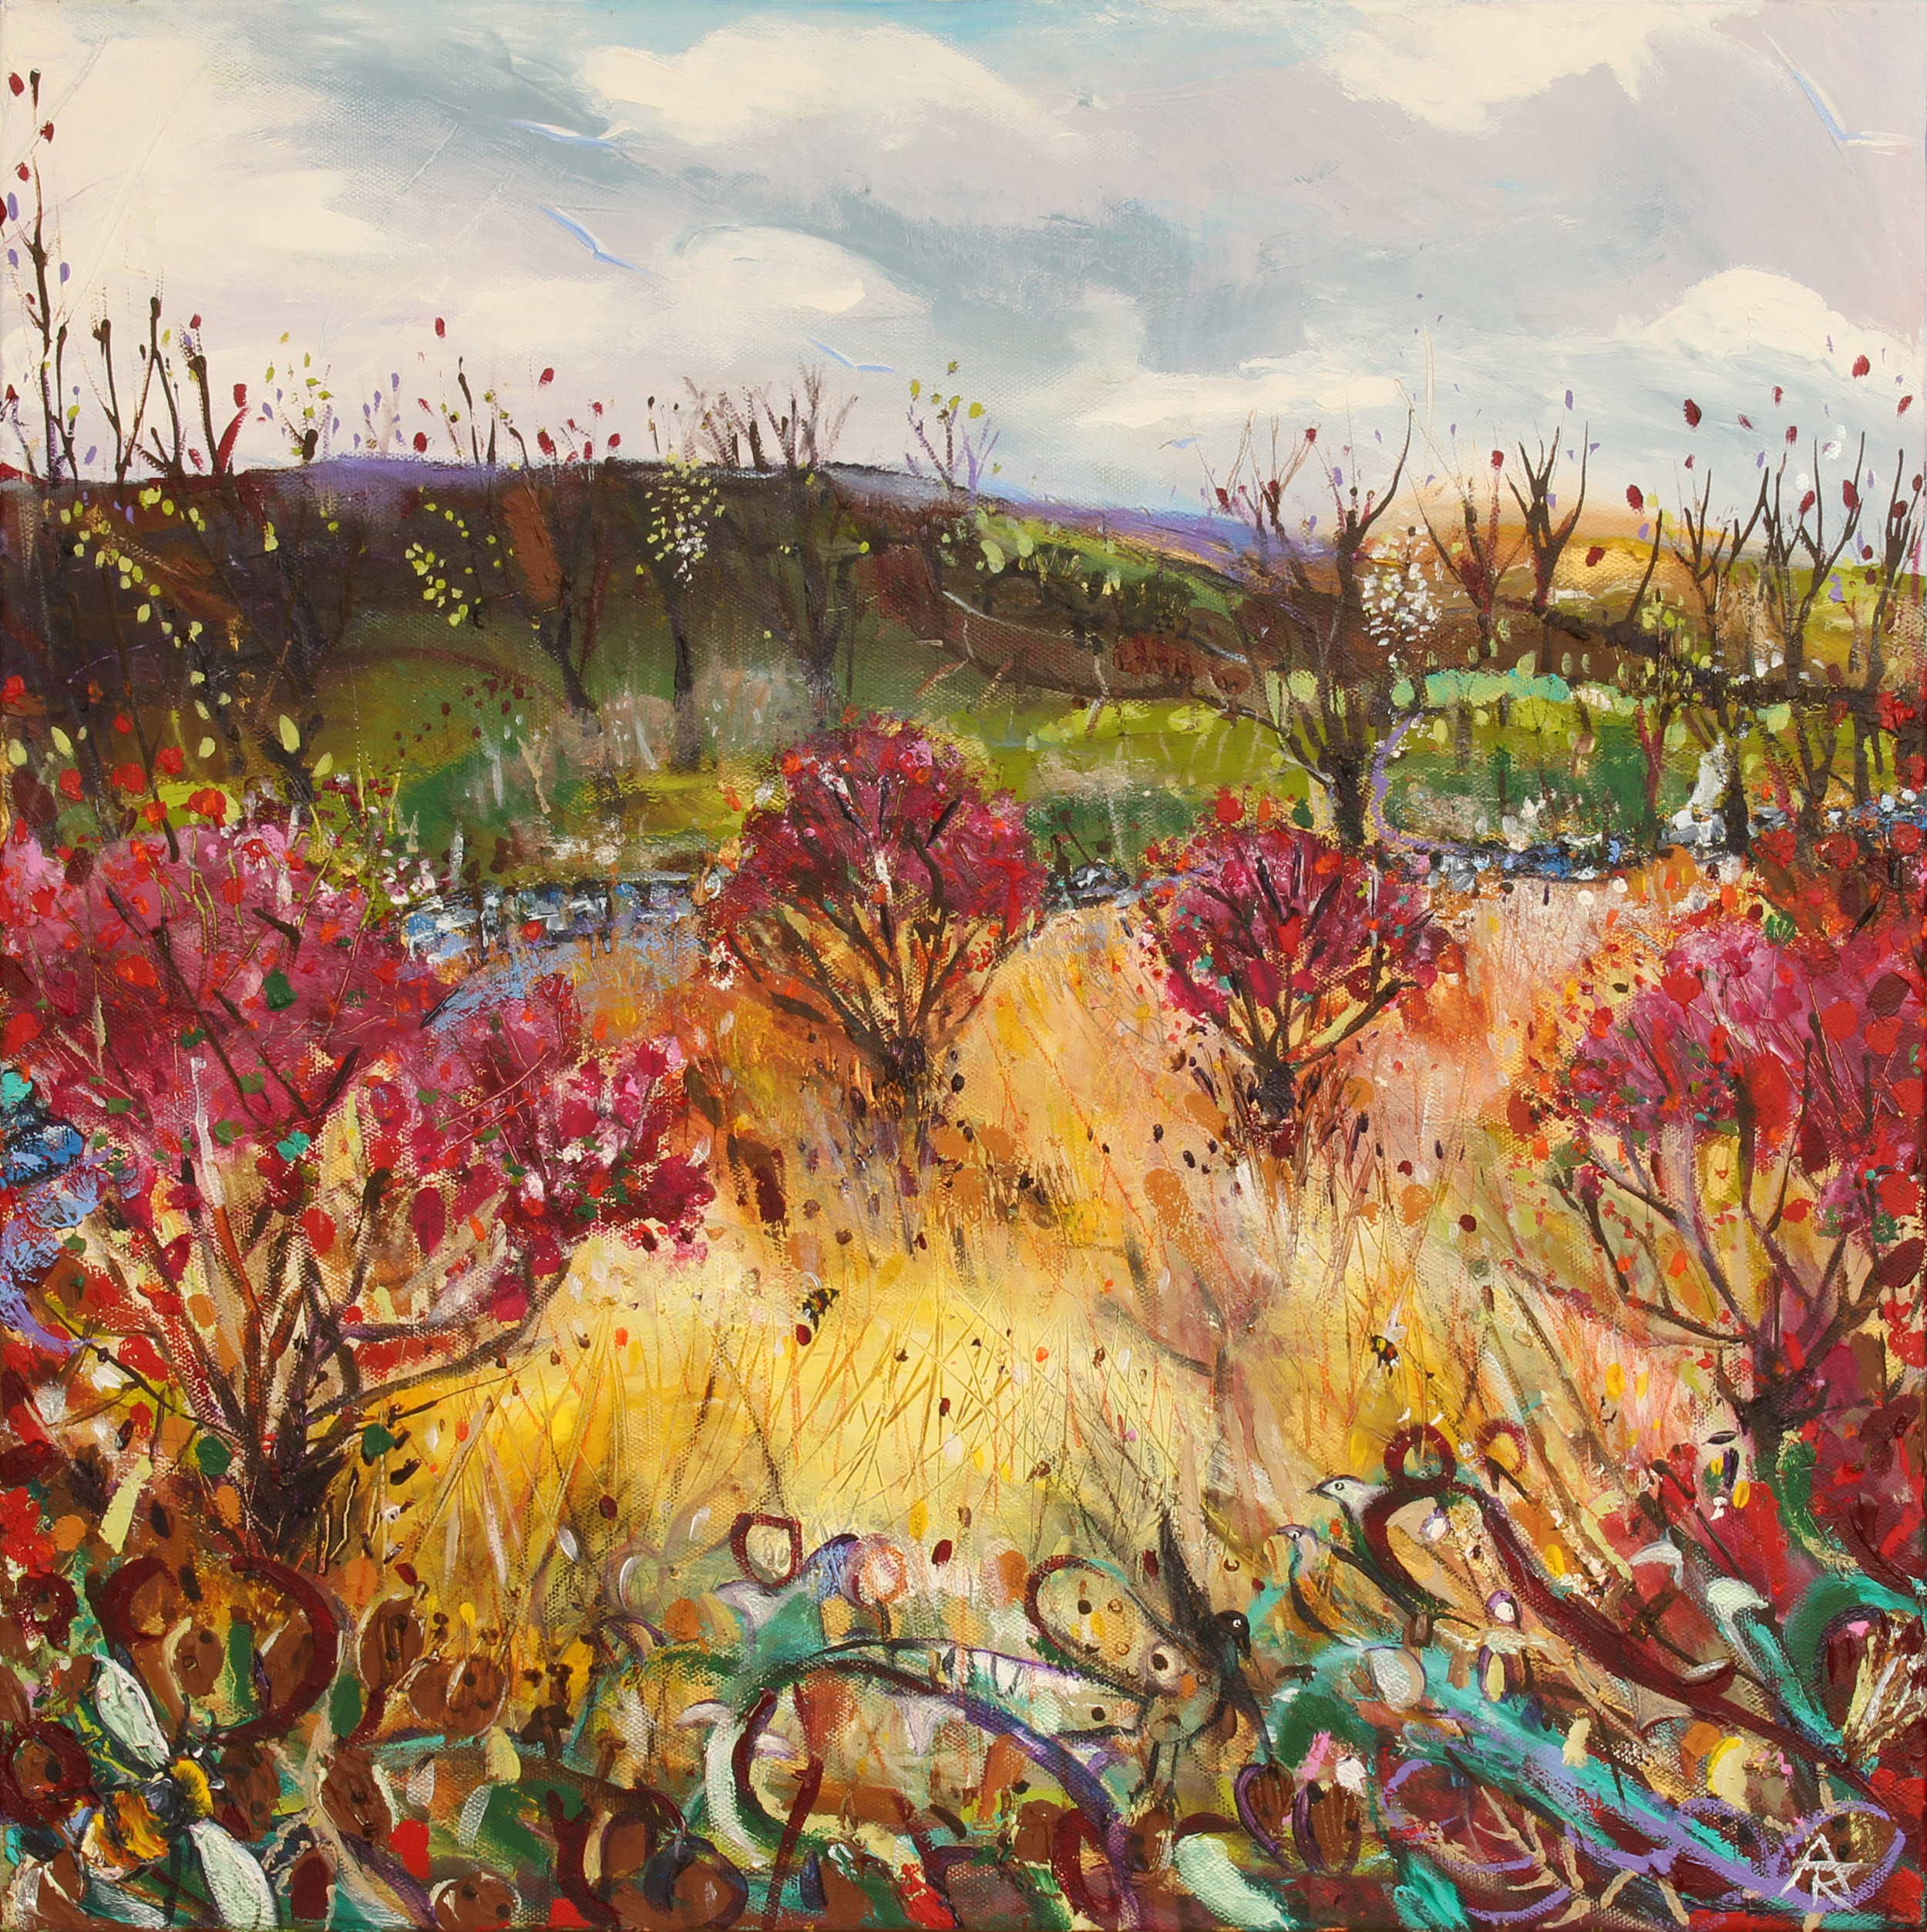 The Hum Of The Bumble In The Red Flowering Currants, acrylic on canvas, 56 x 56 cm